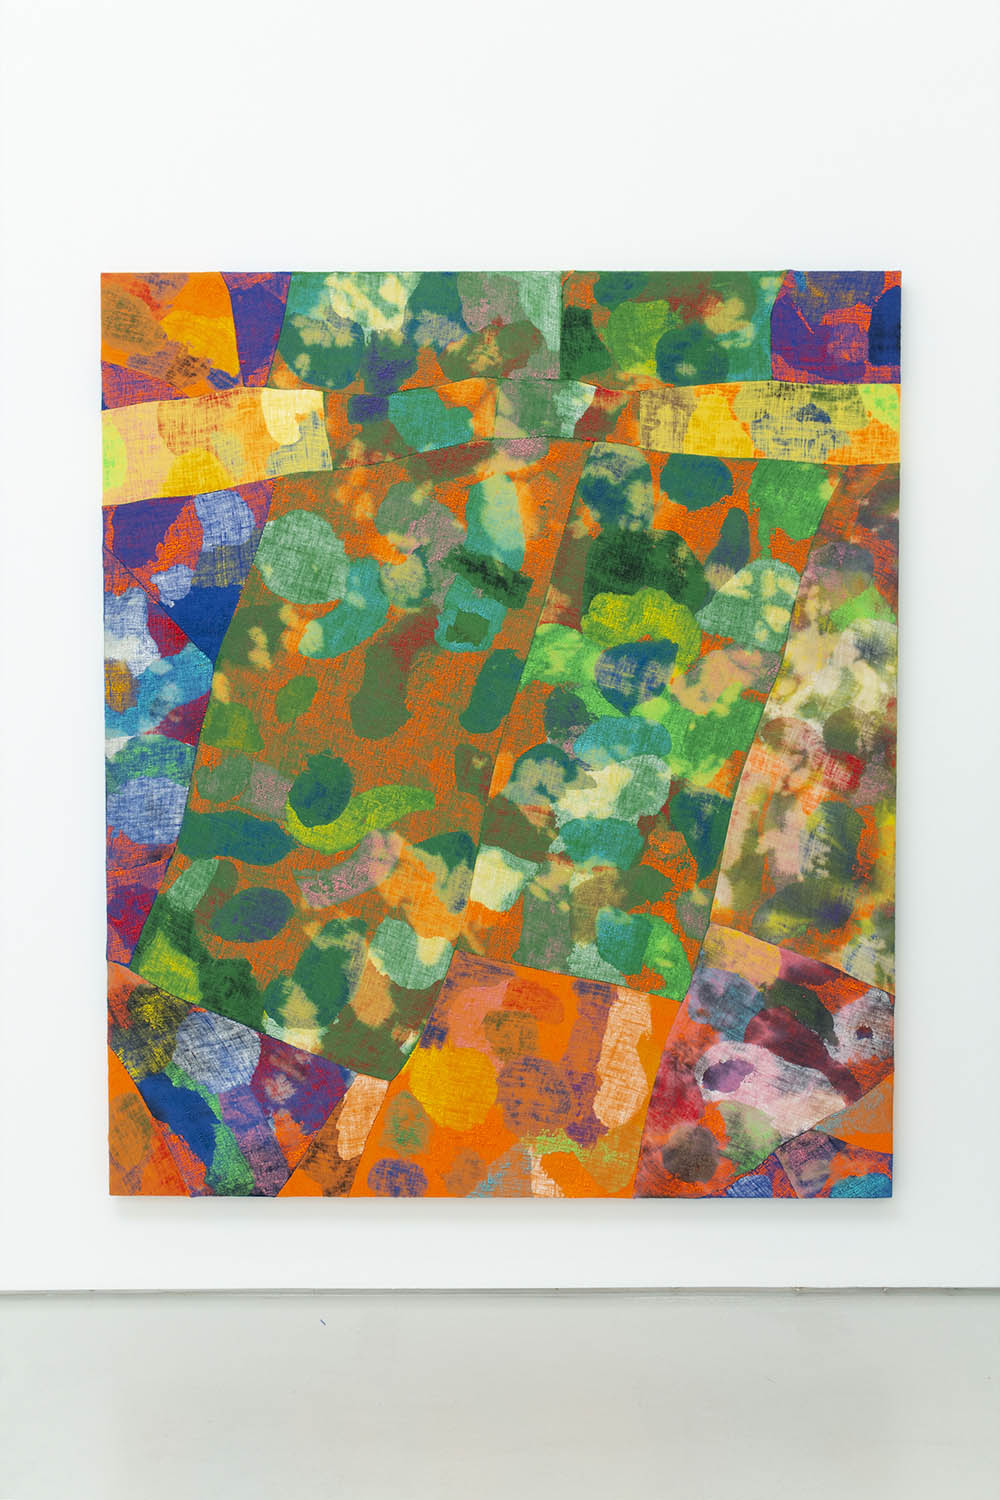 Evan Nesbit, Yuba Fizz, 2018. Acrylic, dye on burlap 79 x 68 in (200.7 x 172.7 cm)